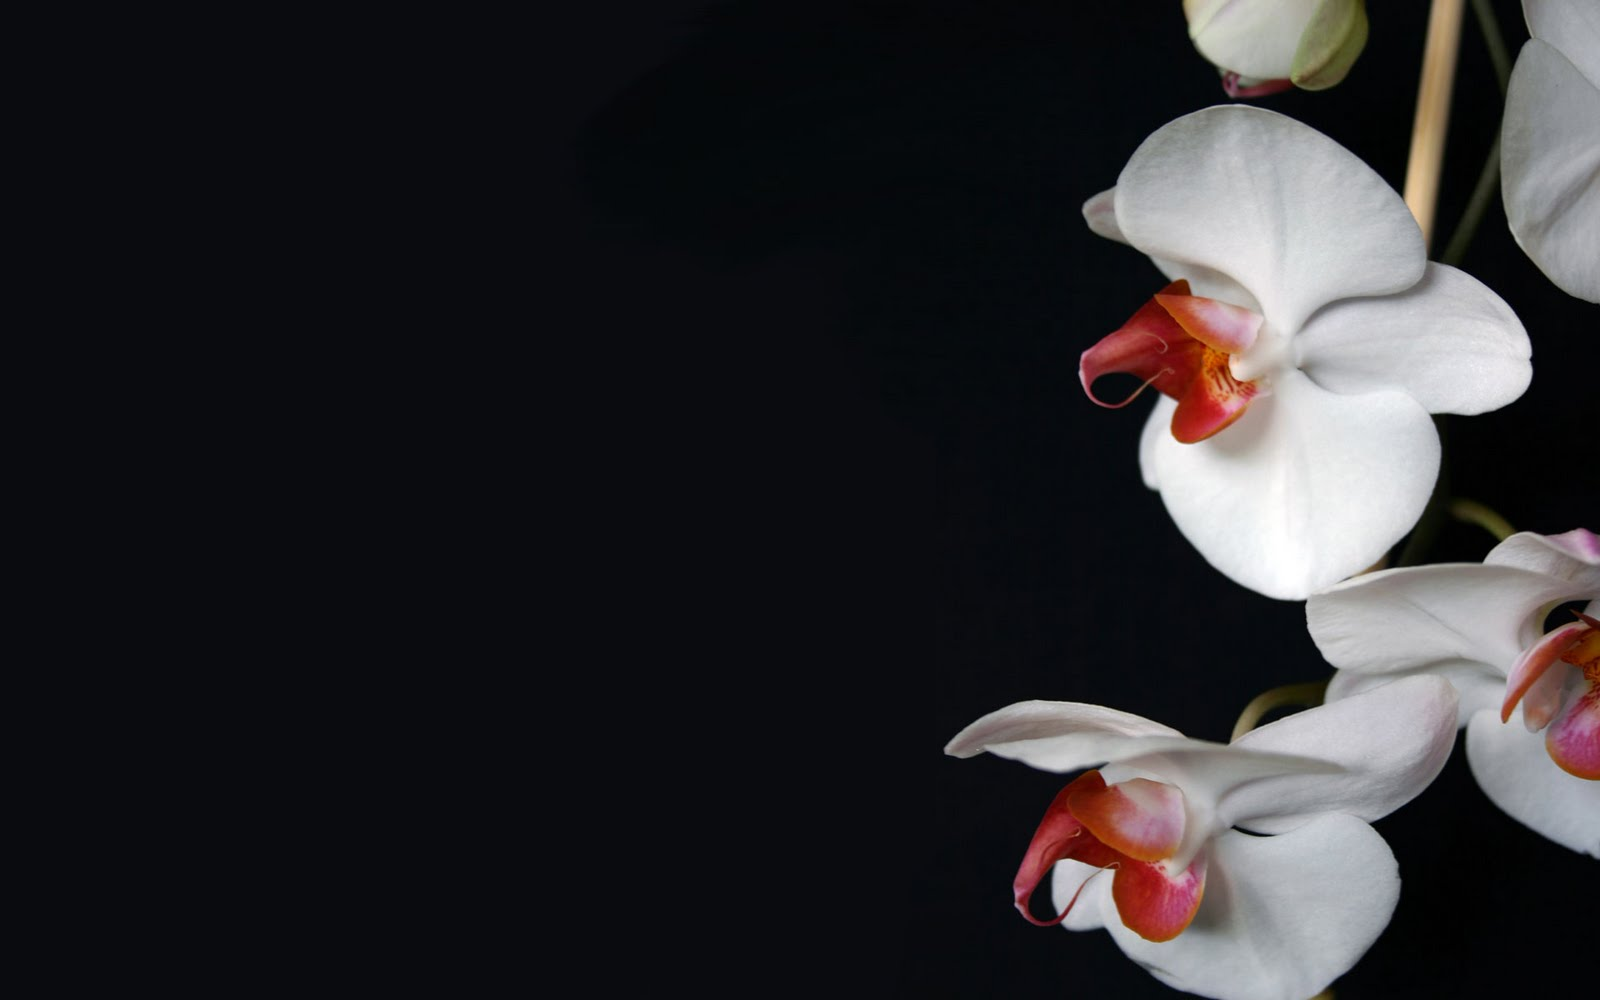 orchid wallpapers backgrounds images - photo #26